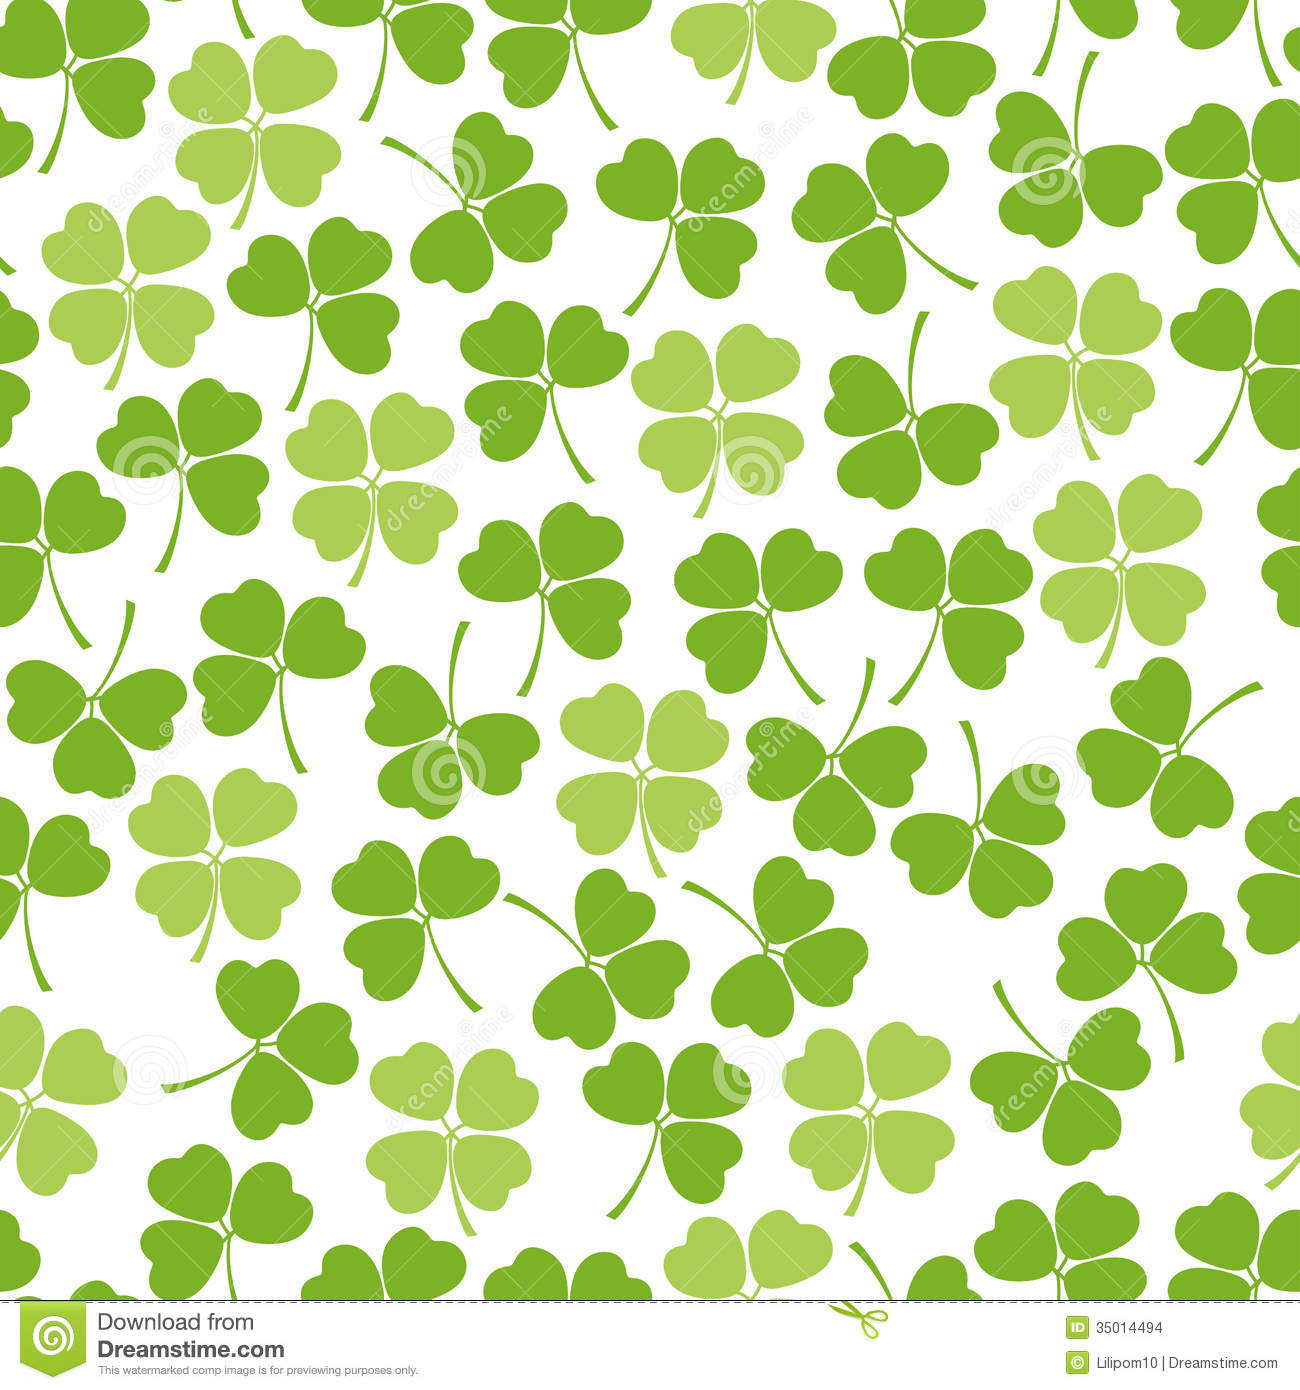 Irish Clover Background Seamless clover background stock images 1300x1390